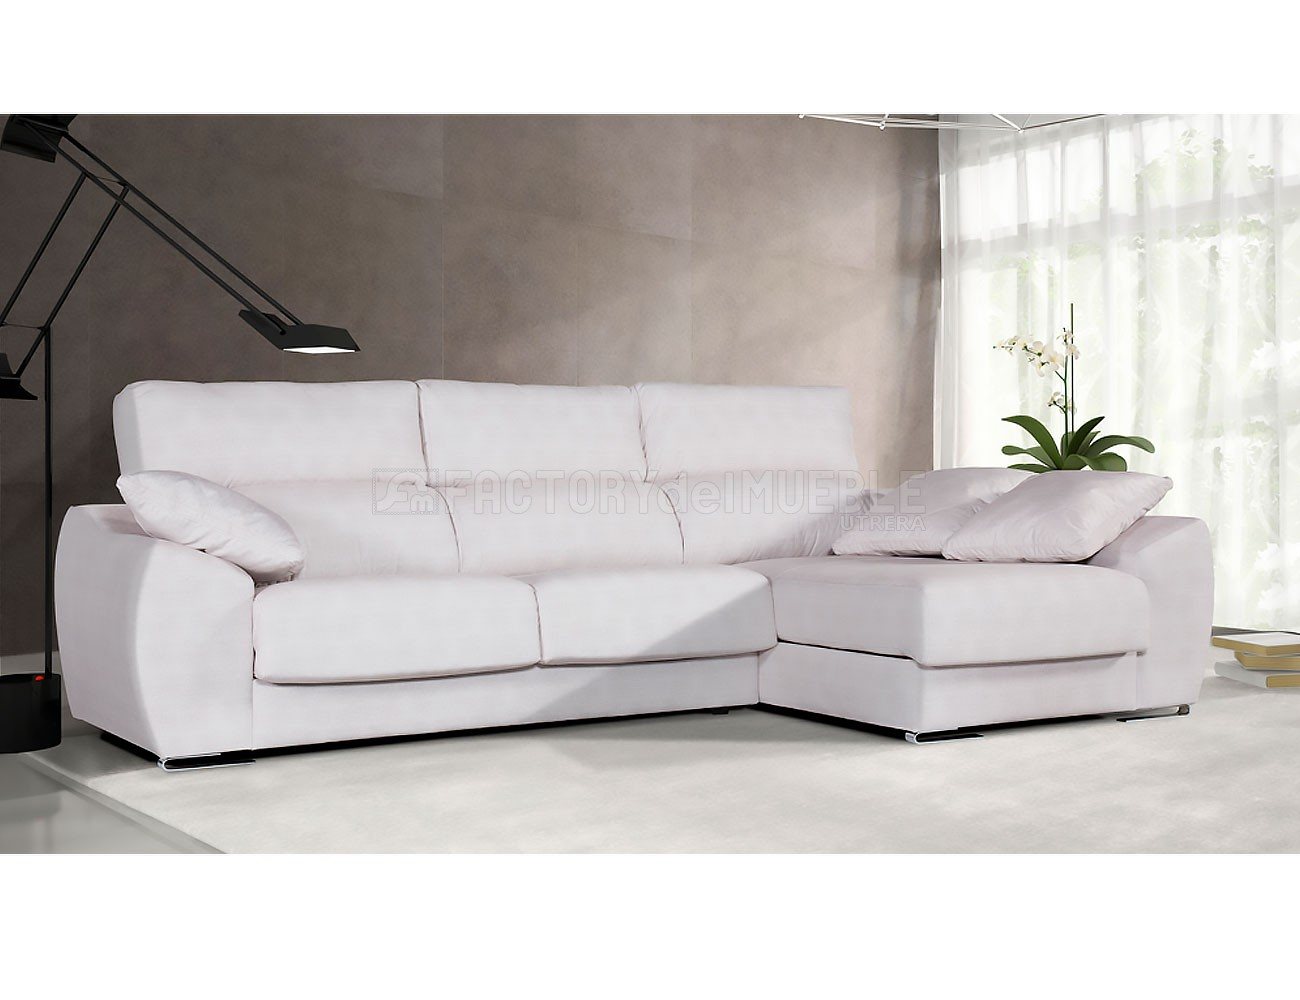 Sofa chaiselongue tosca7